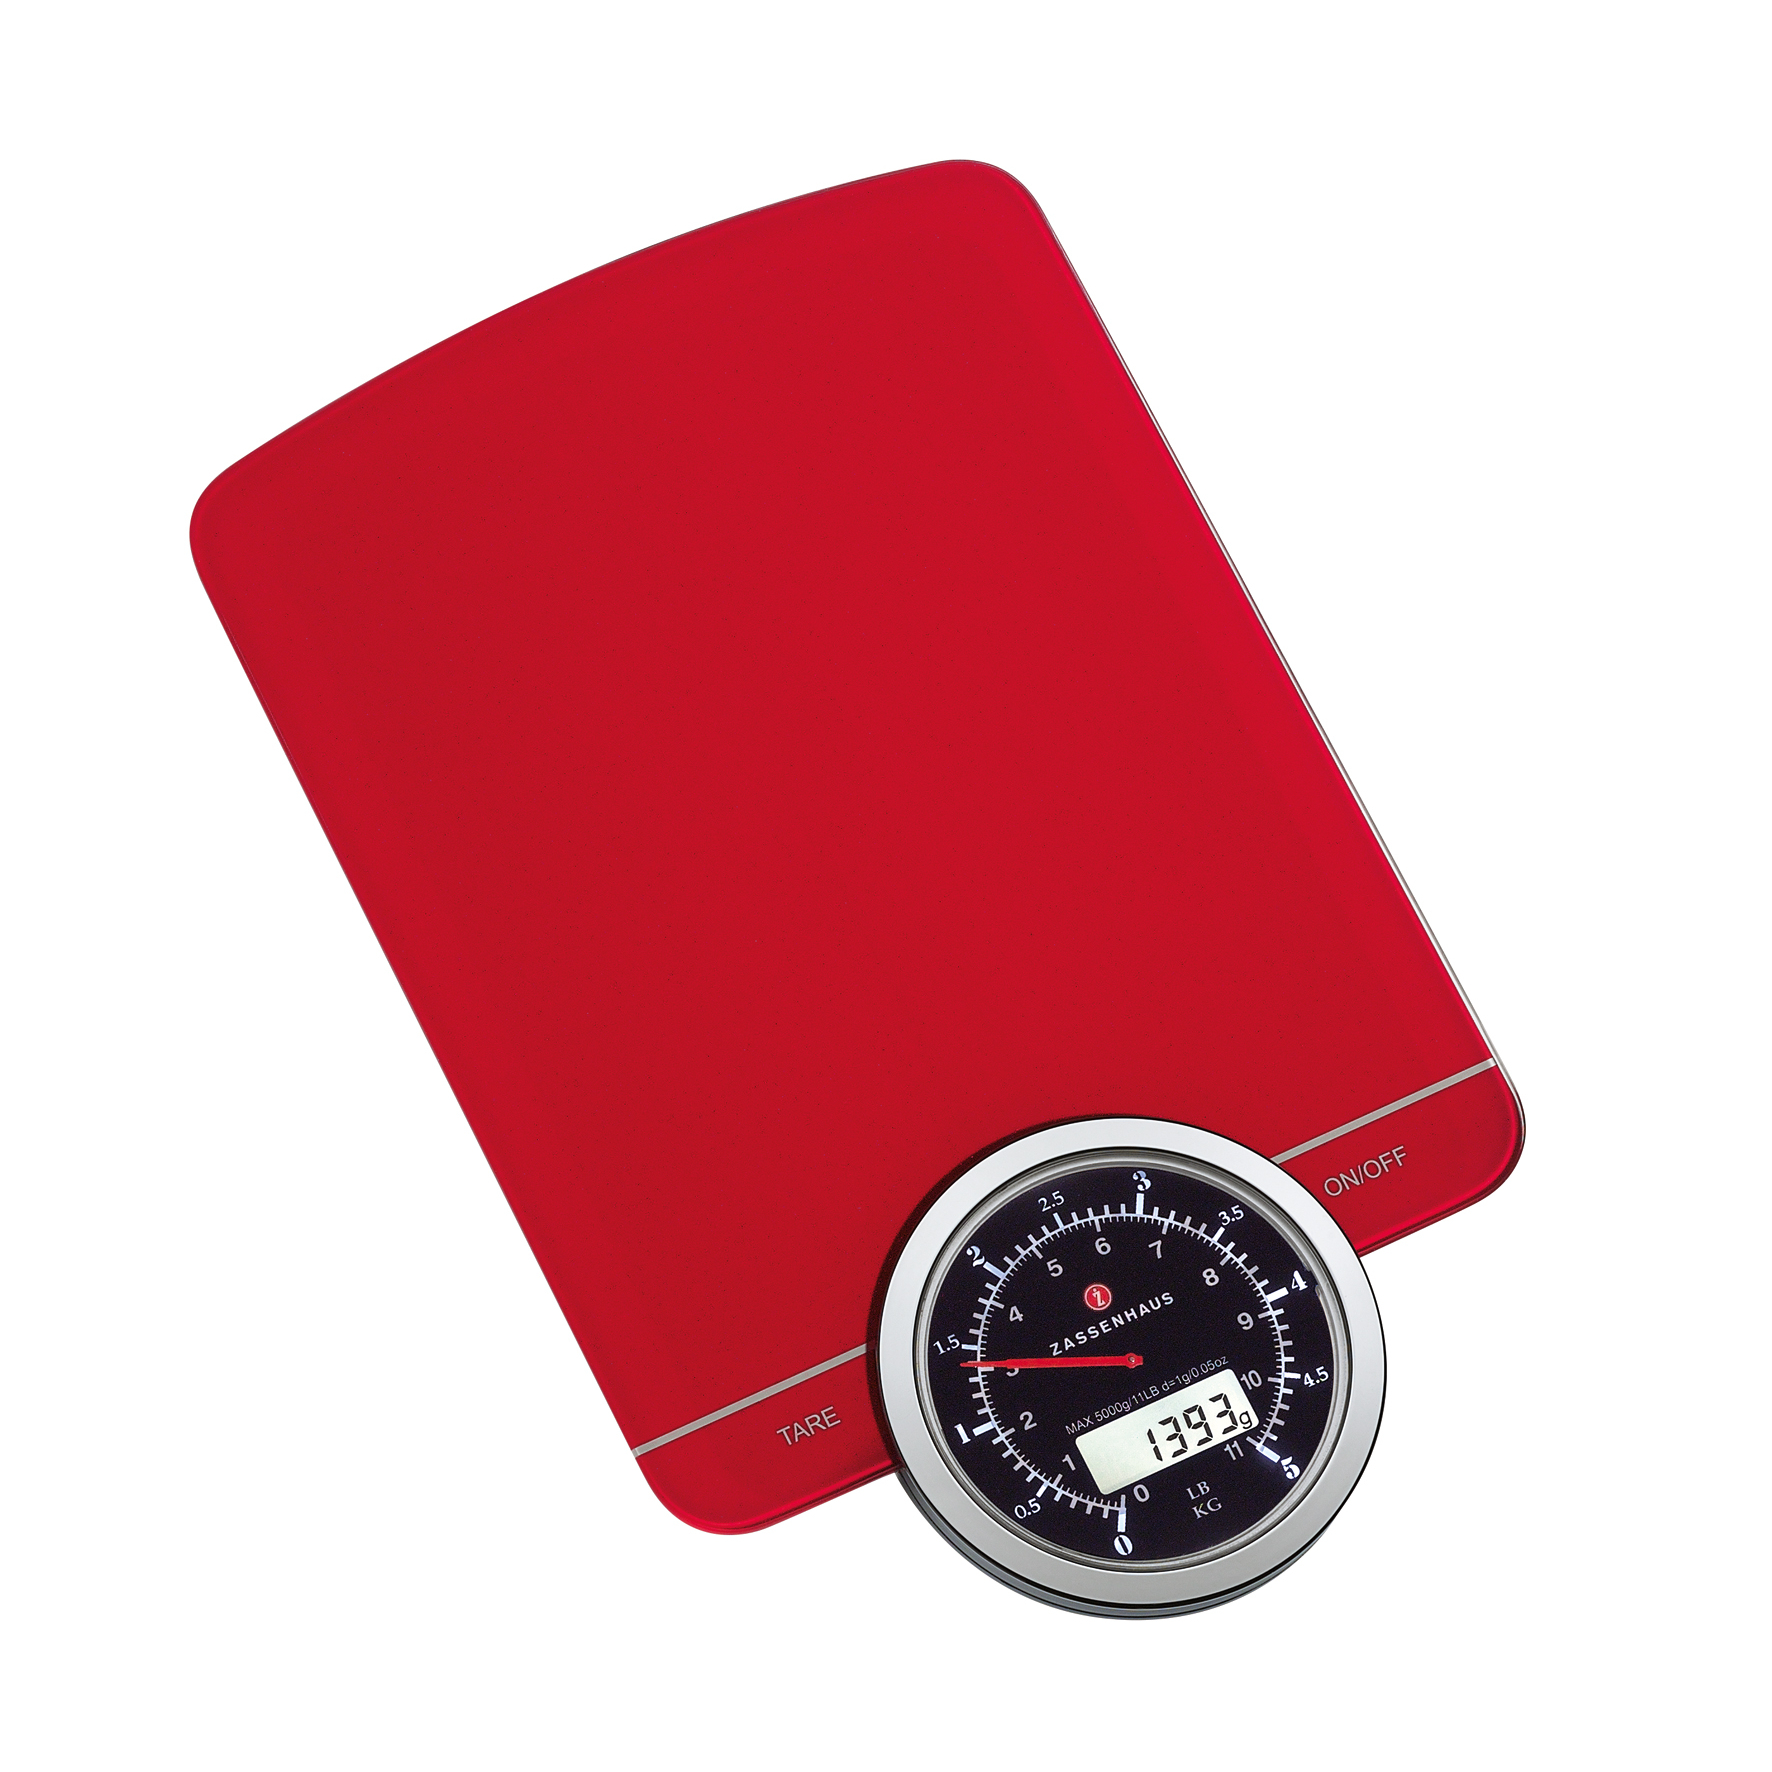 Zassenhaus Retro Kitchen Scale, Red